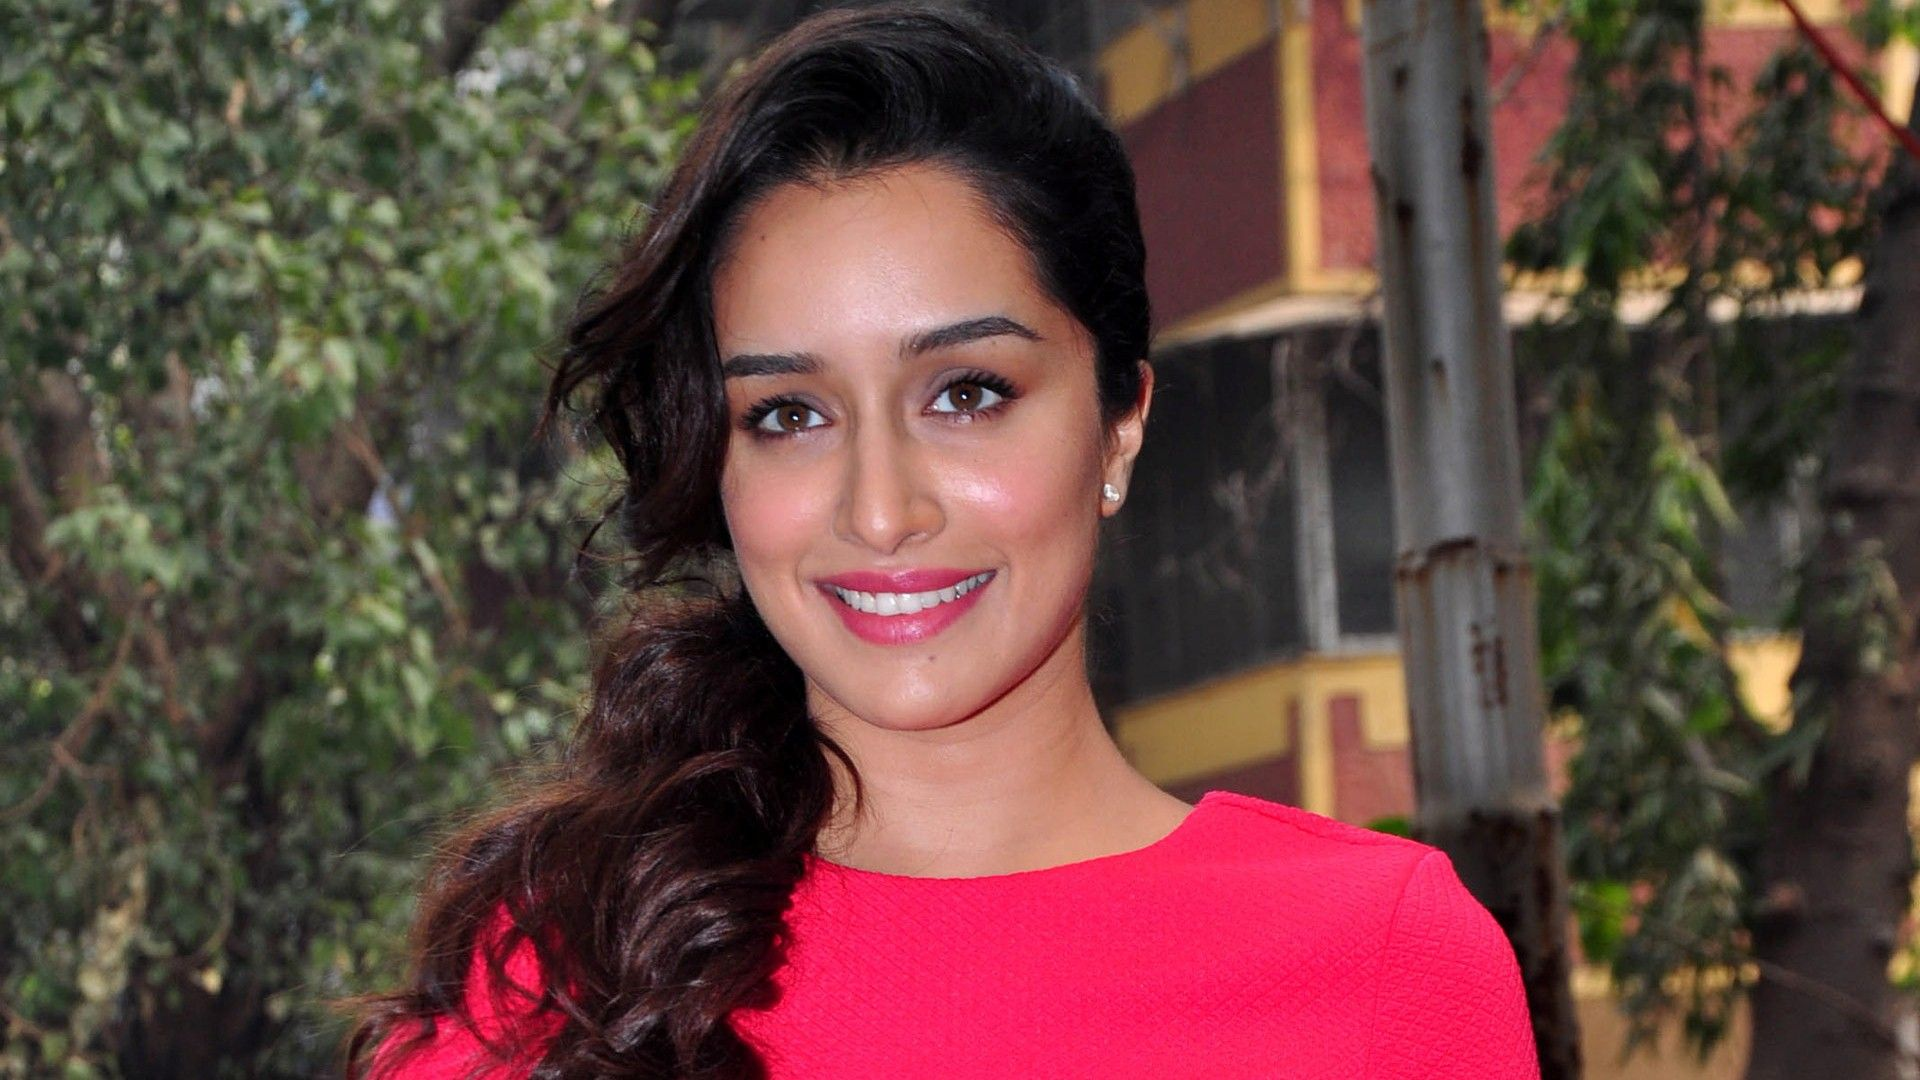 shraddha kapoor k wallpapers hd wallpapers 1920 1200 shraddha kapoor images wallpapers 67 wallpapers shraddha kapoor bollywood actress full hd wallpaper shraddha kapoor k wallpapers hd